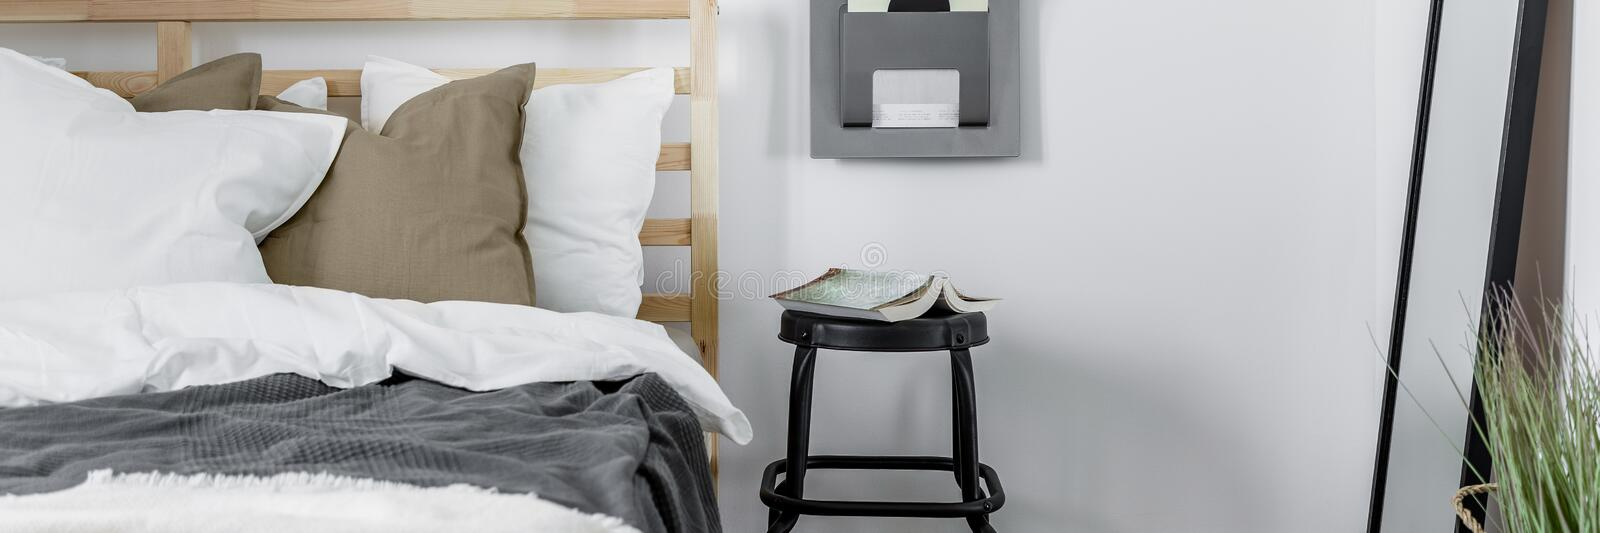 Cozy bedroom with wooden bed stock photos